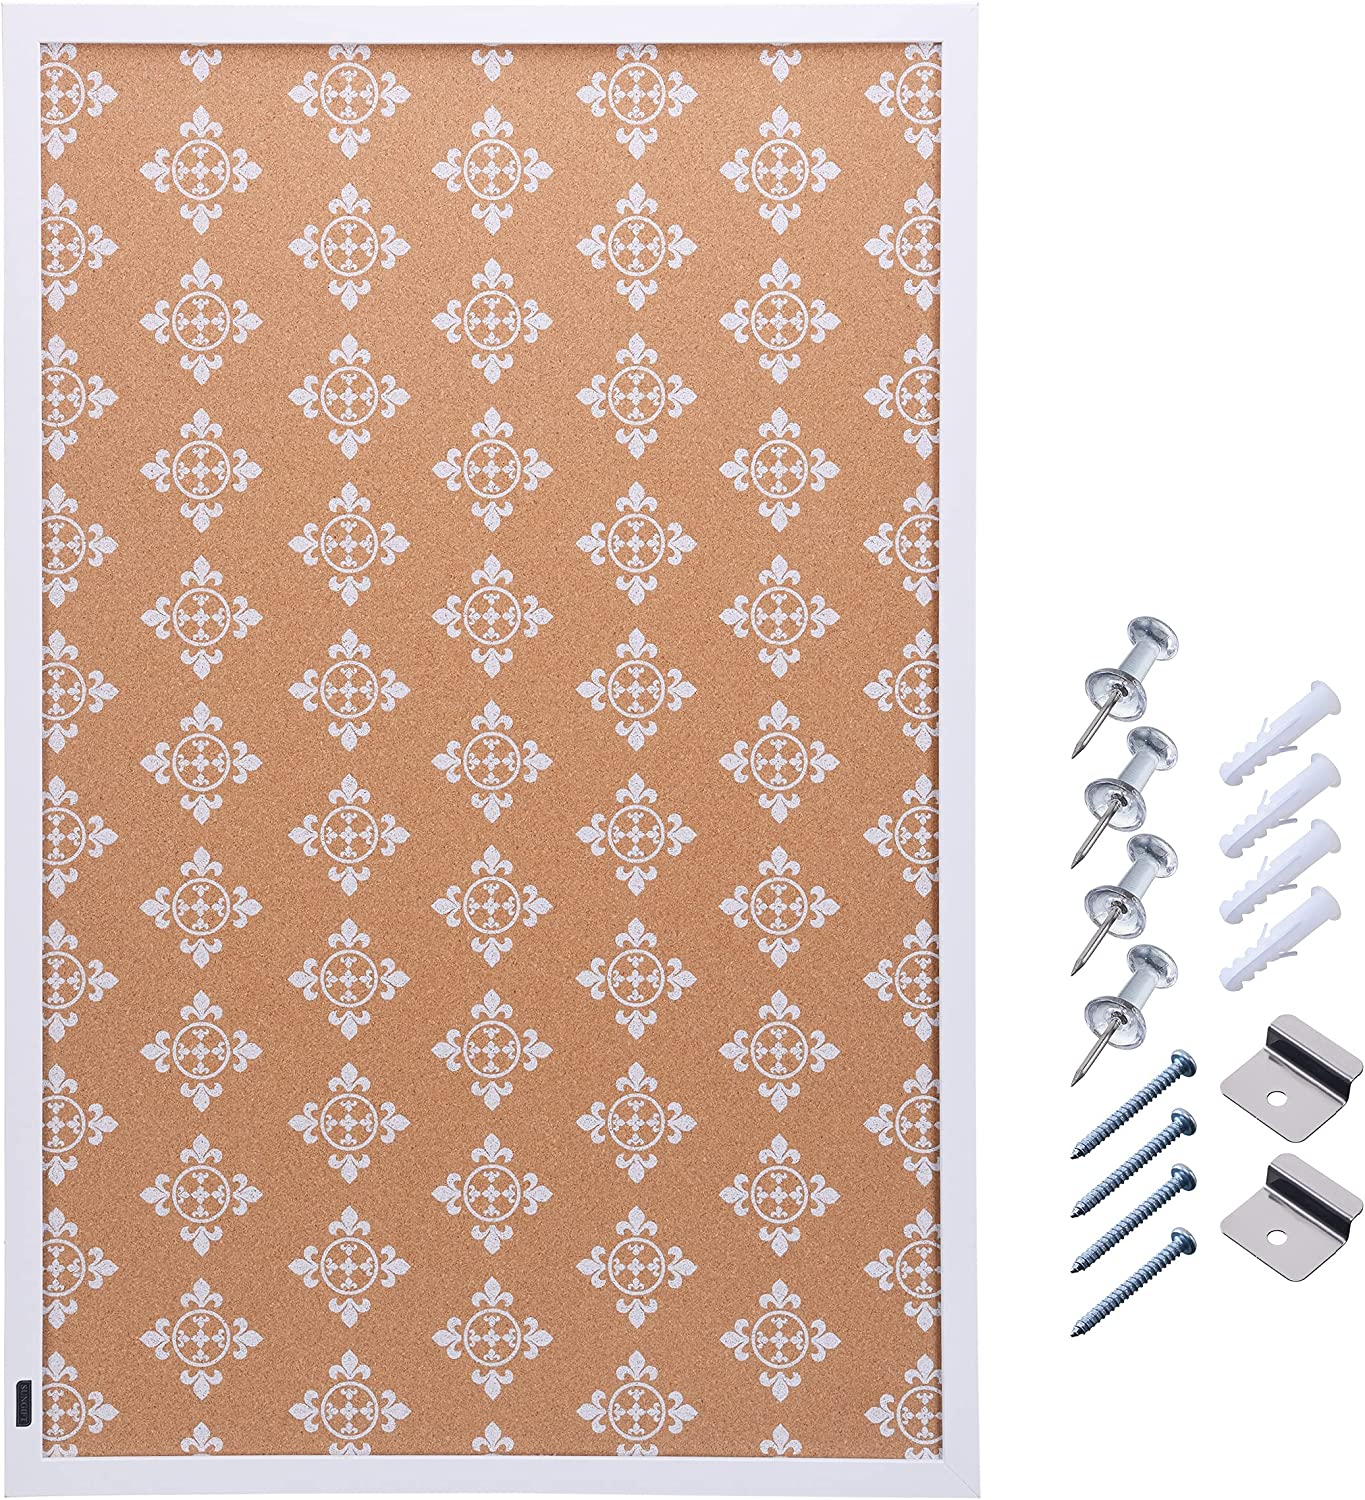 SUNGIFT Cork Board for Wall with Frame 36 x 24 Floral Print Cork Tiles Long Cork Bulletin Board with Pushpins Corkboards for School, Home, Office, Bedroom Decor